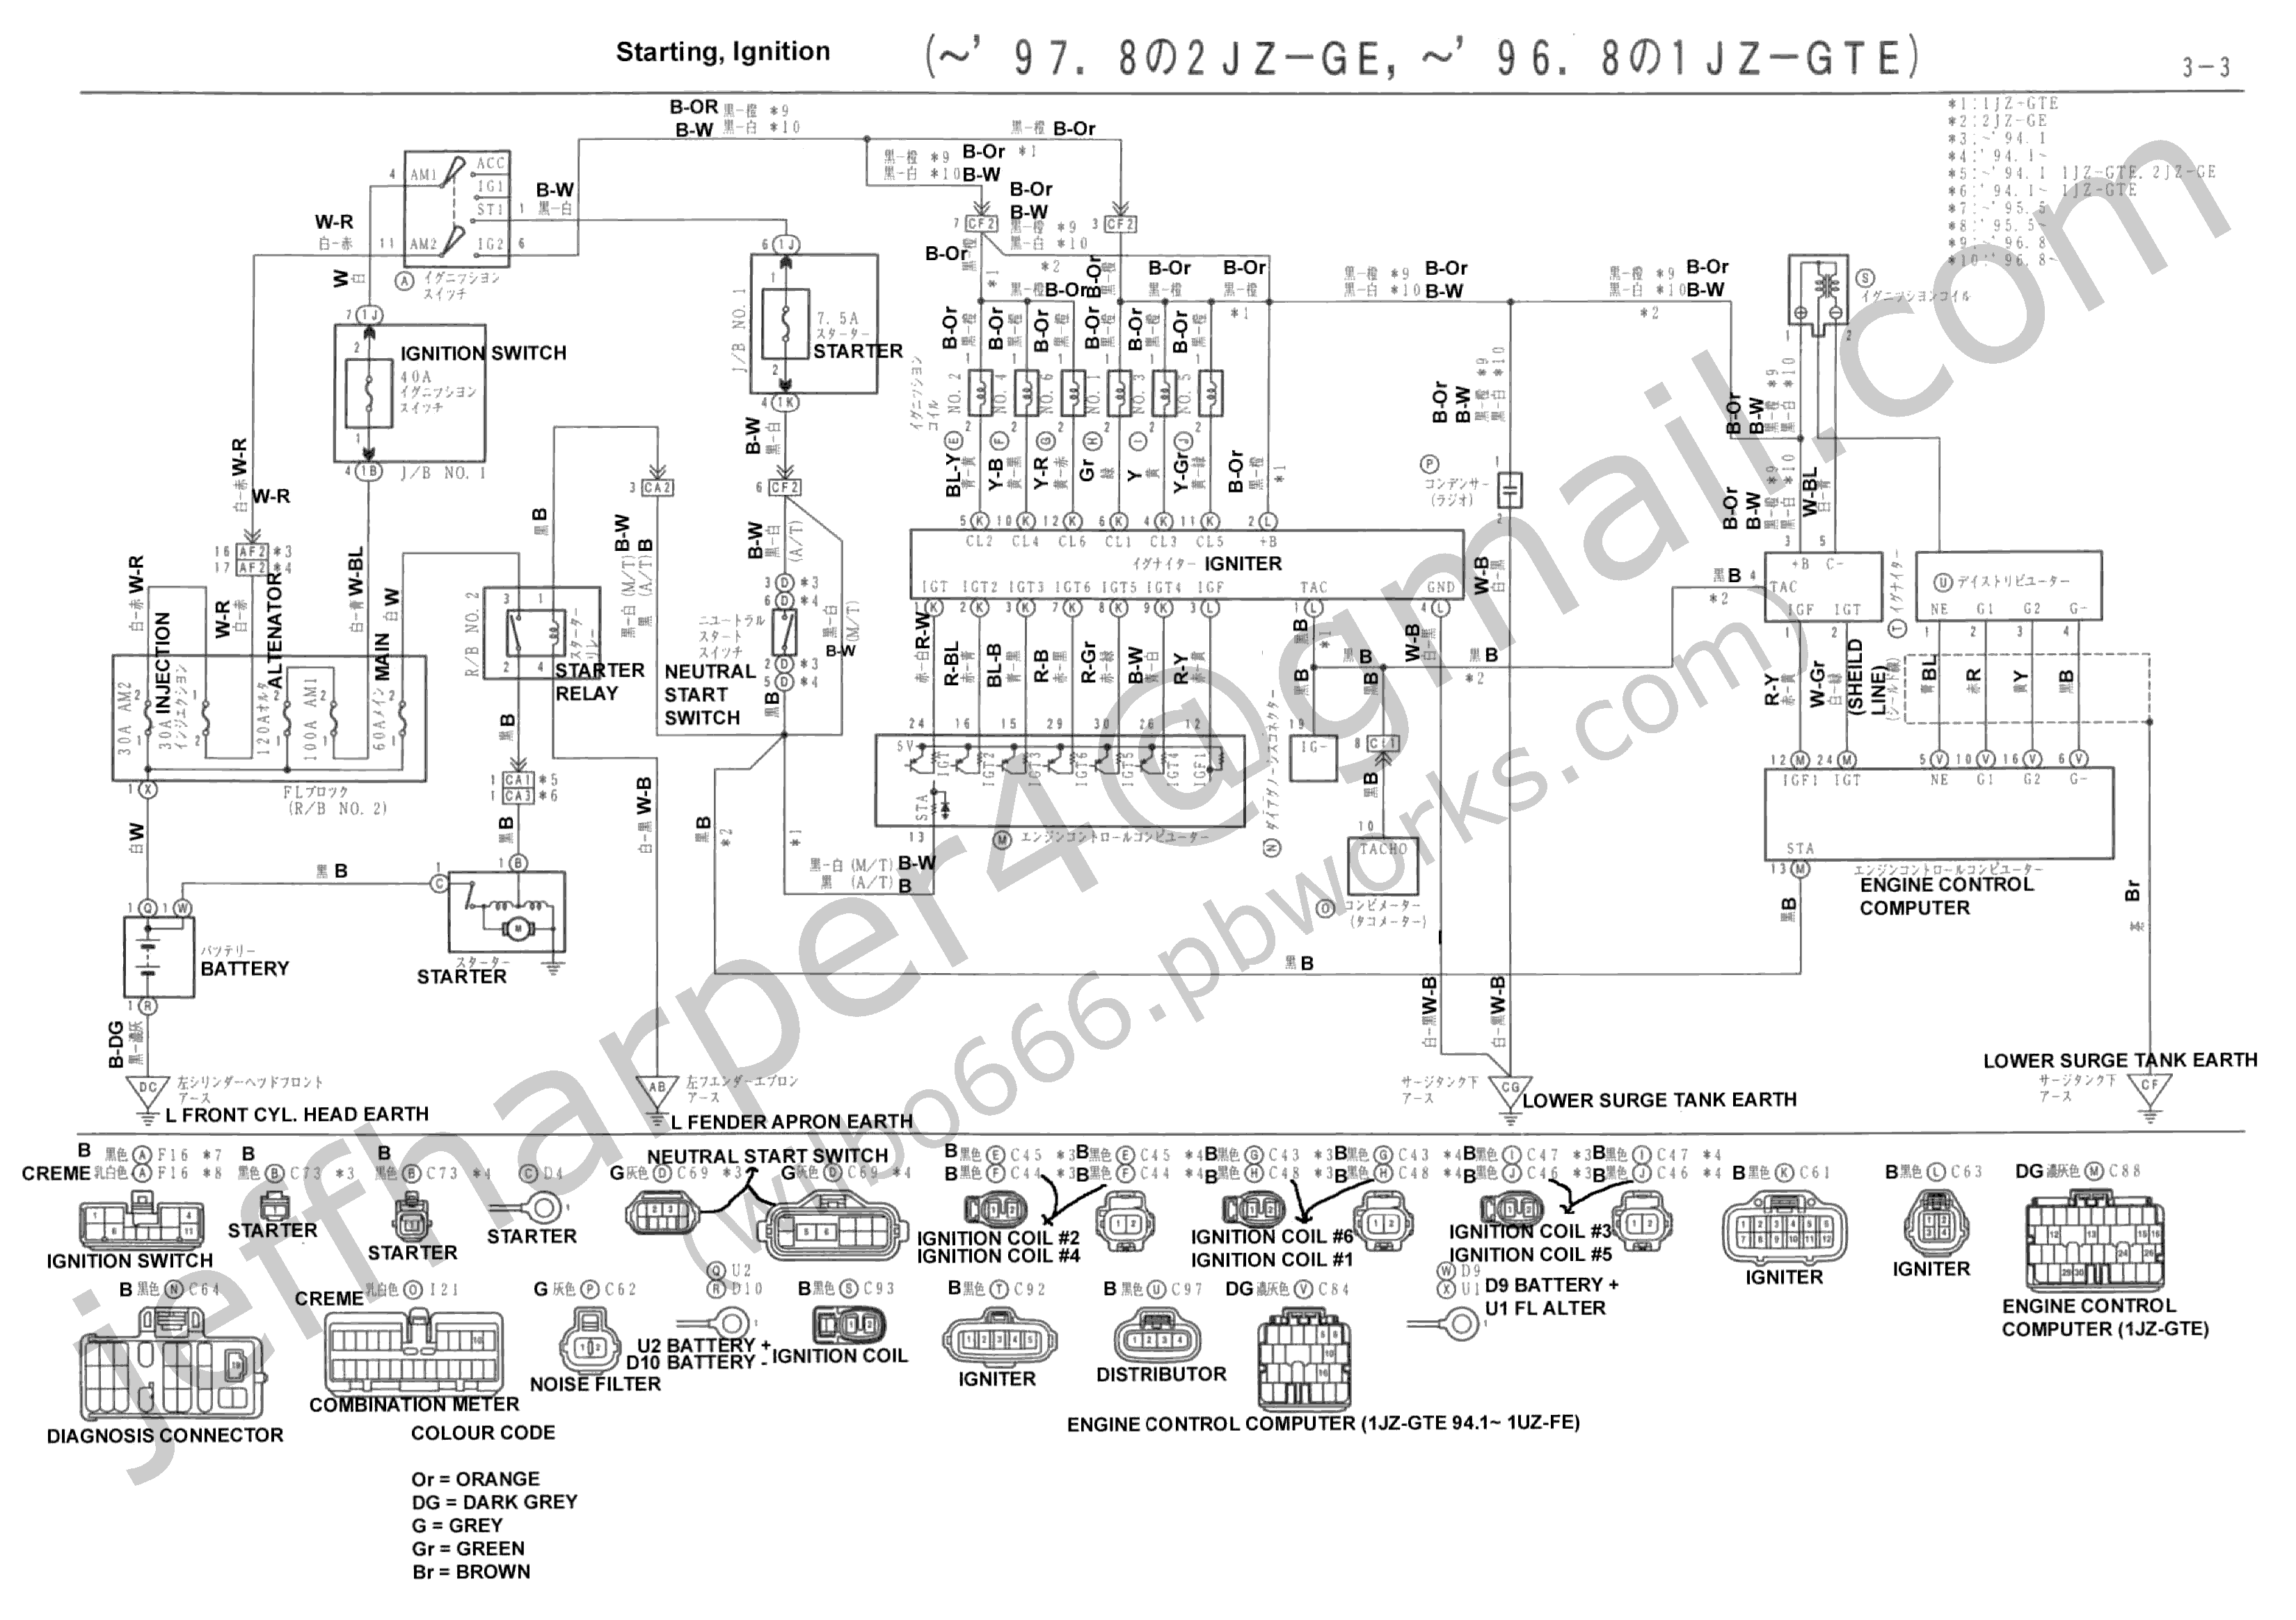 1jz Distributor Ecu Wiring Diagram